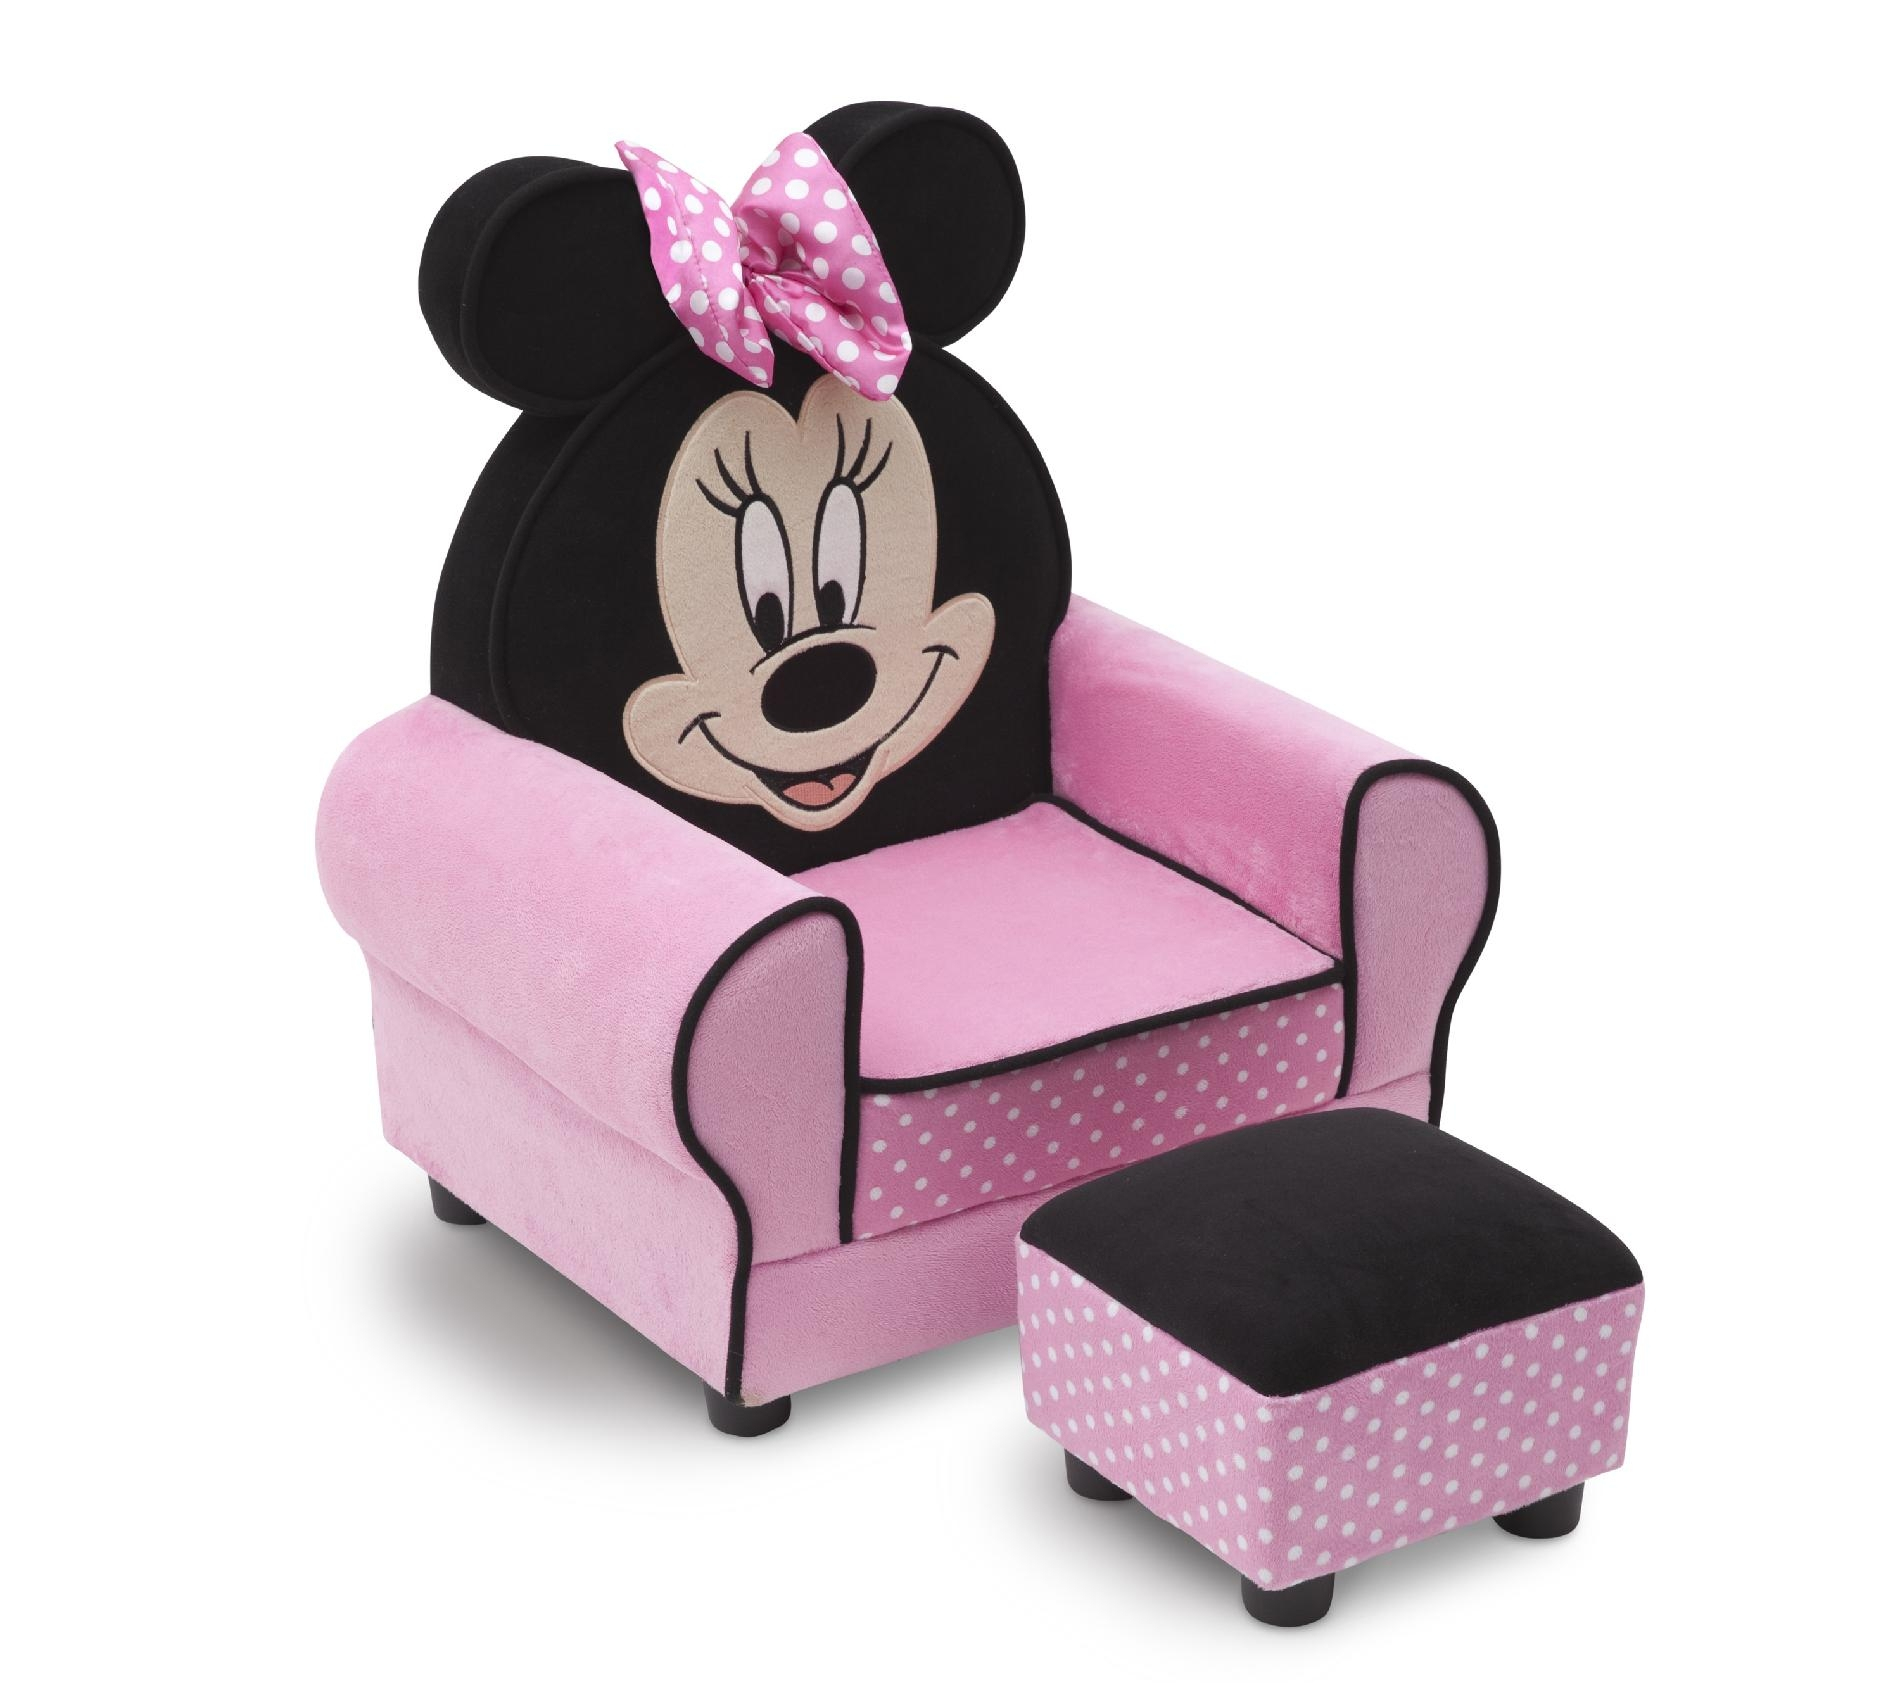 Disney Mickey Mouse Clubhouse Toddler Sofa Chair And Ottoman Throughout Disney Sofa Chairs (View 9 of 15)